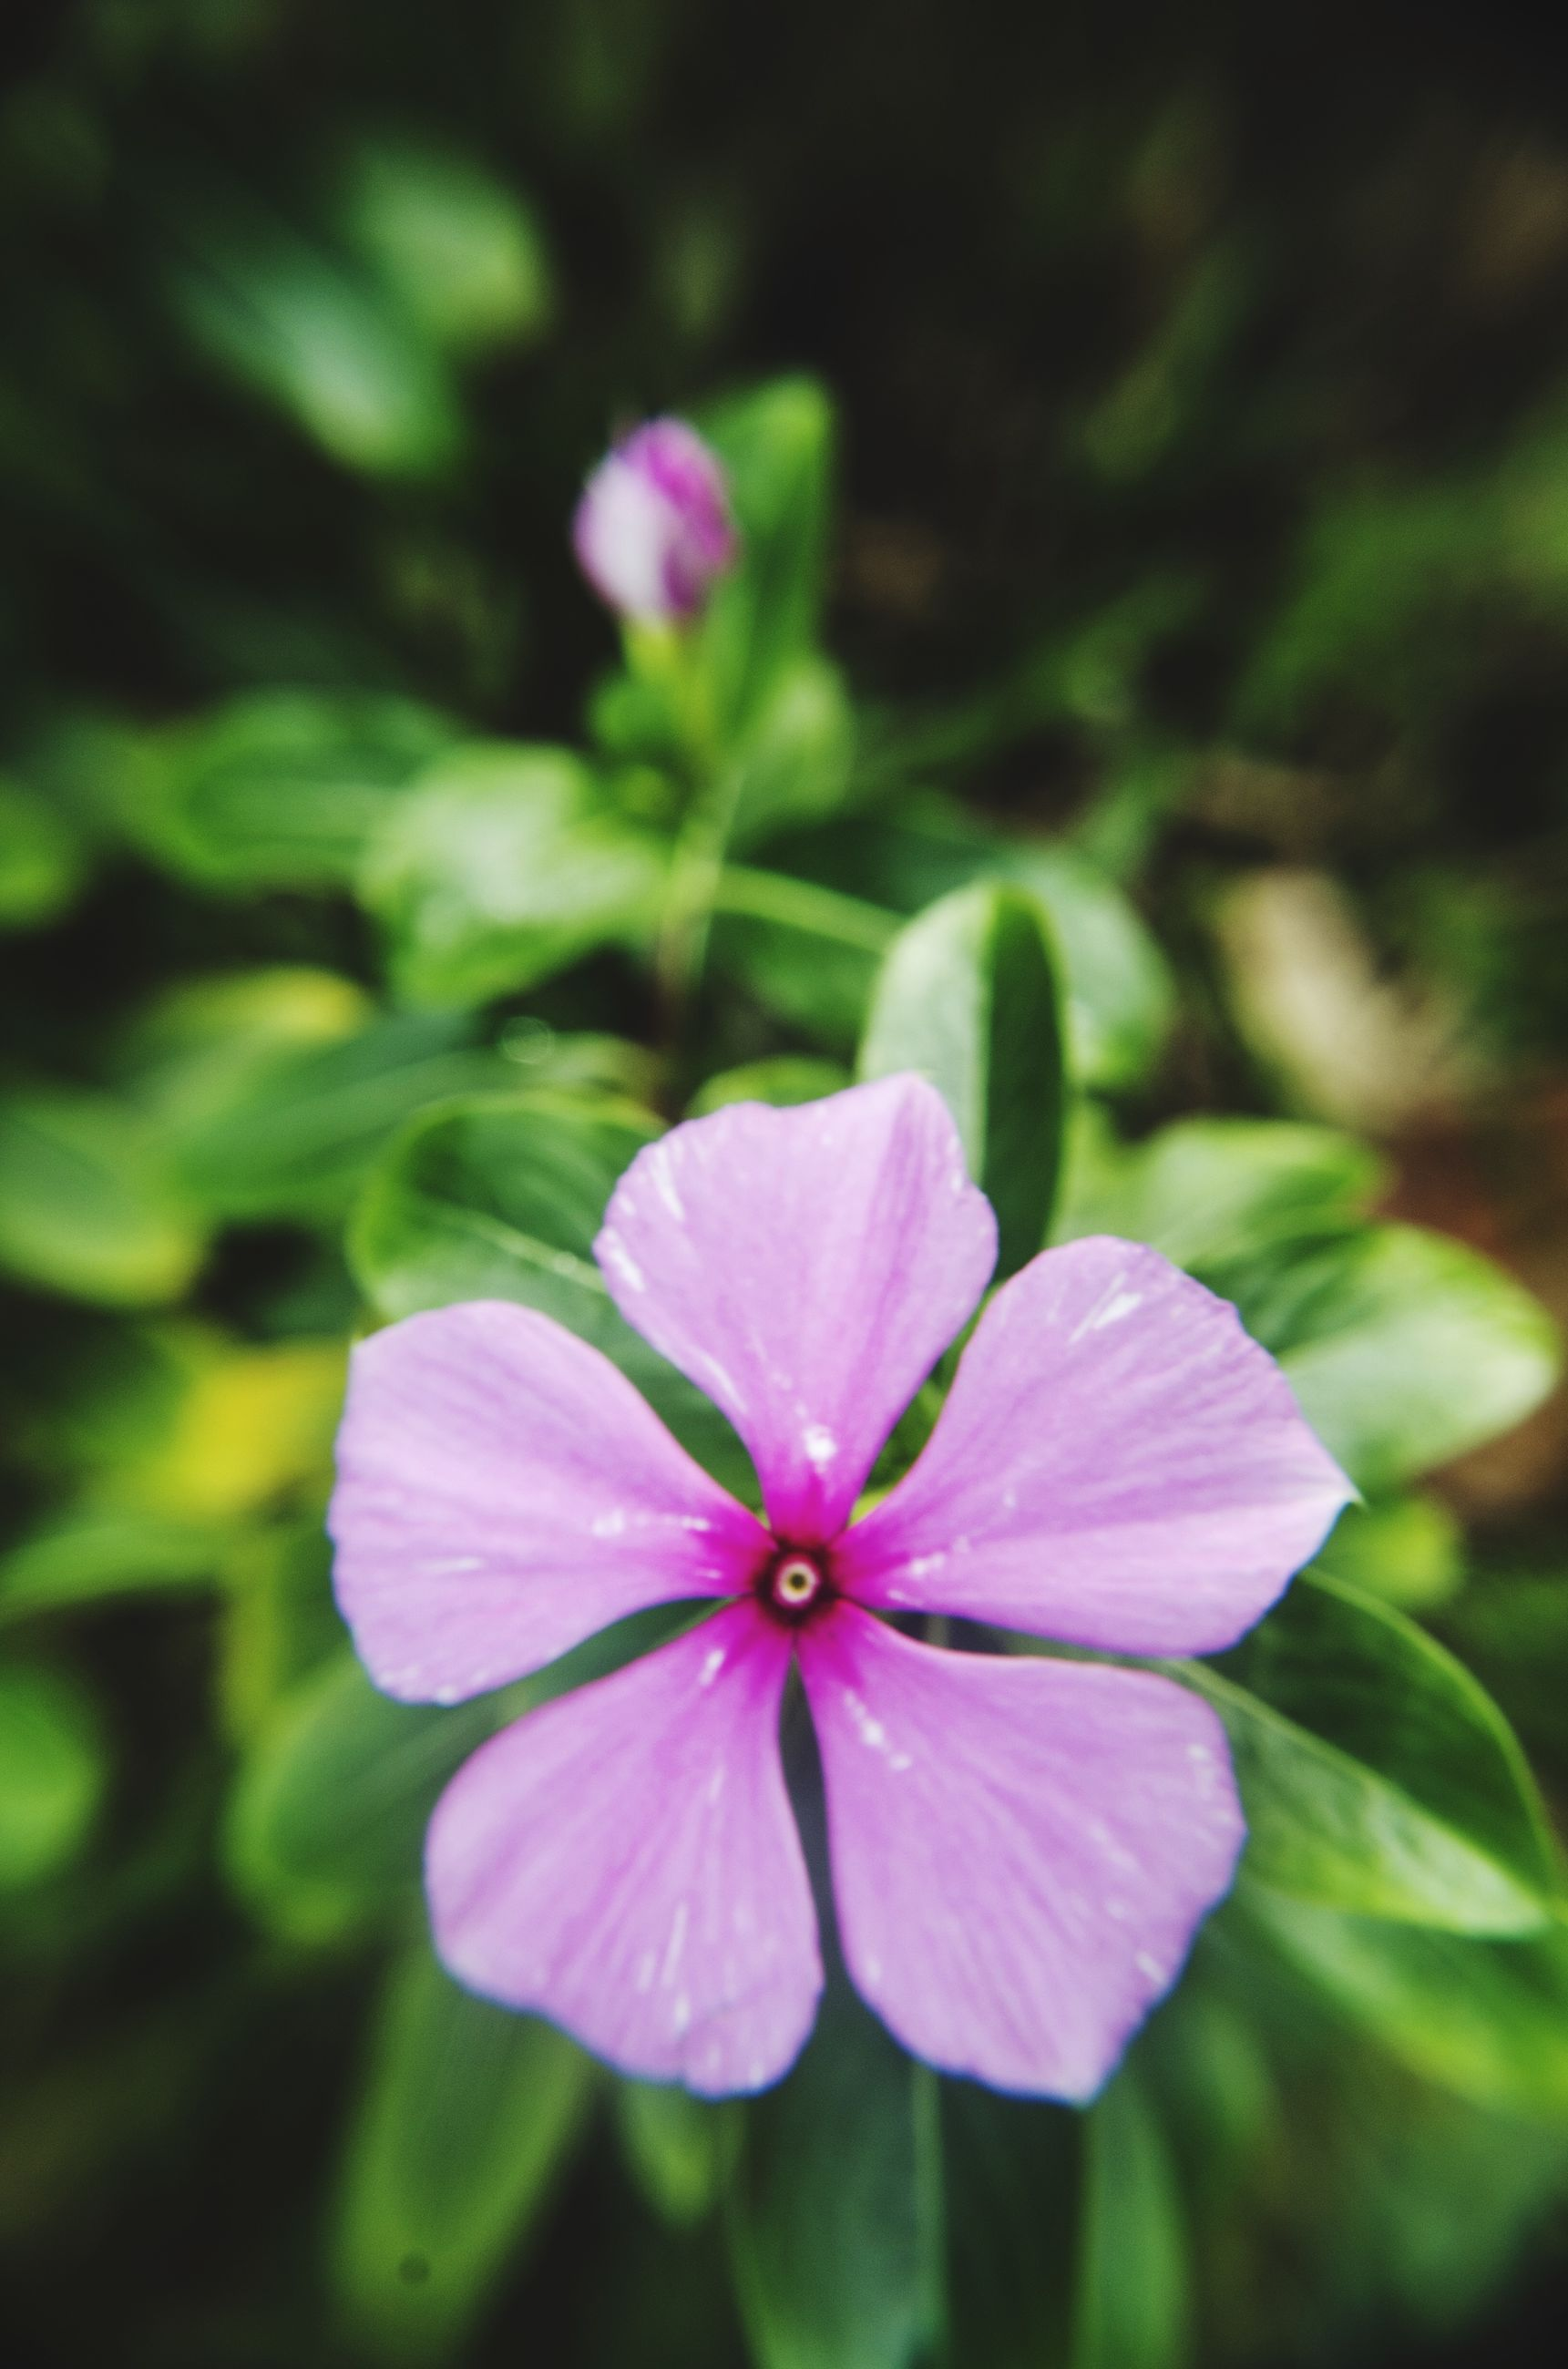 flower, petal, freshness, fragility, growth, flower head, beauty in nature, close-up, focus on foreground, pink color, blooming, nature, plant, in bloom, selective focus, purple, pollen, day, stamen, outdoors